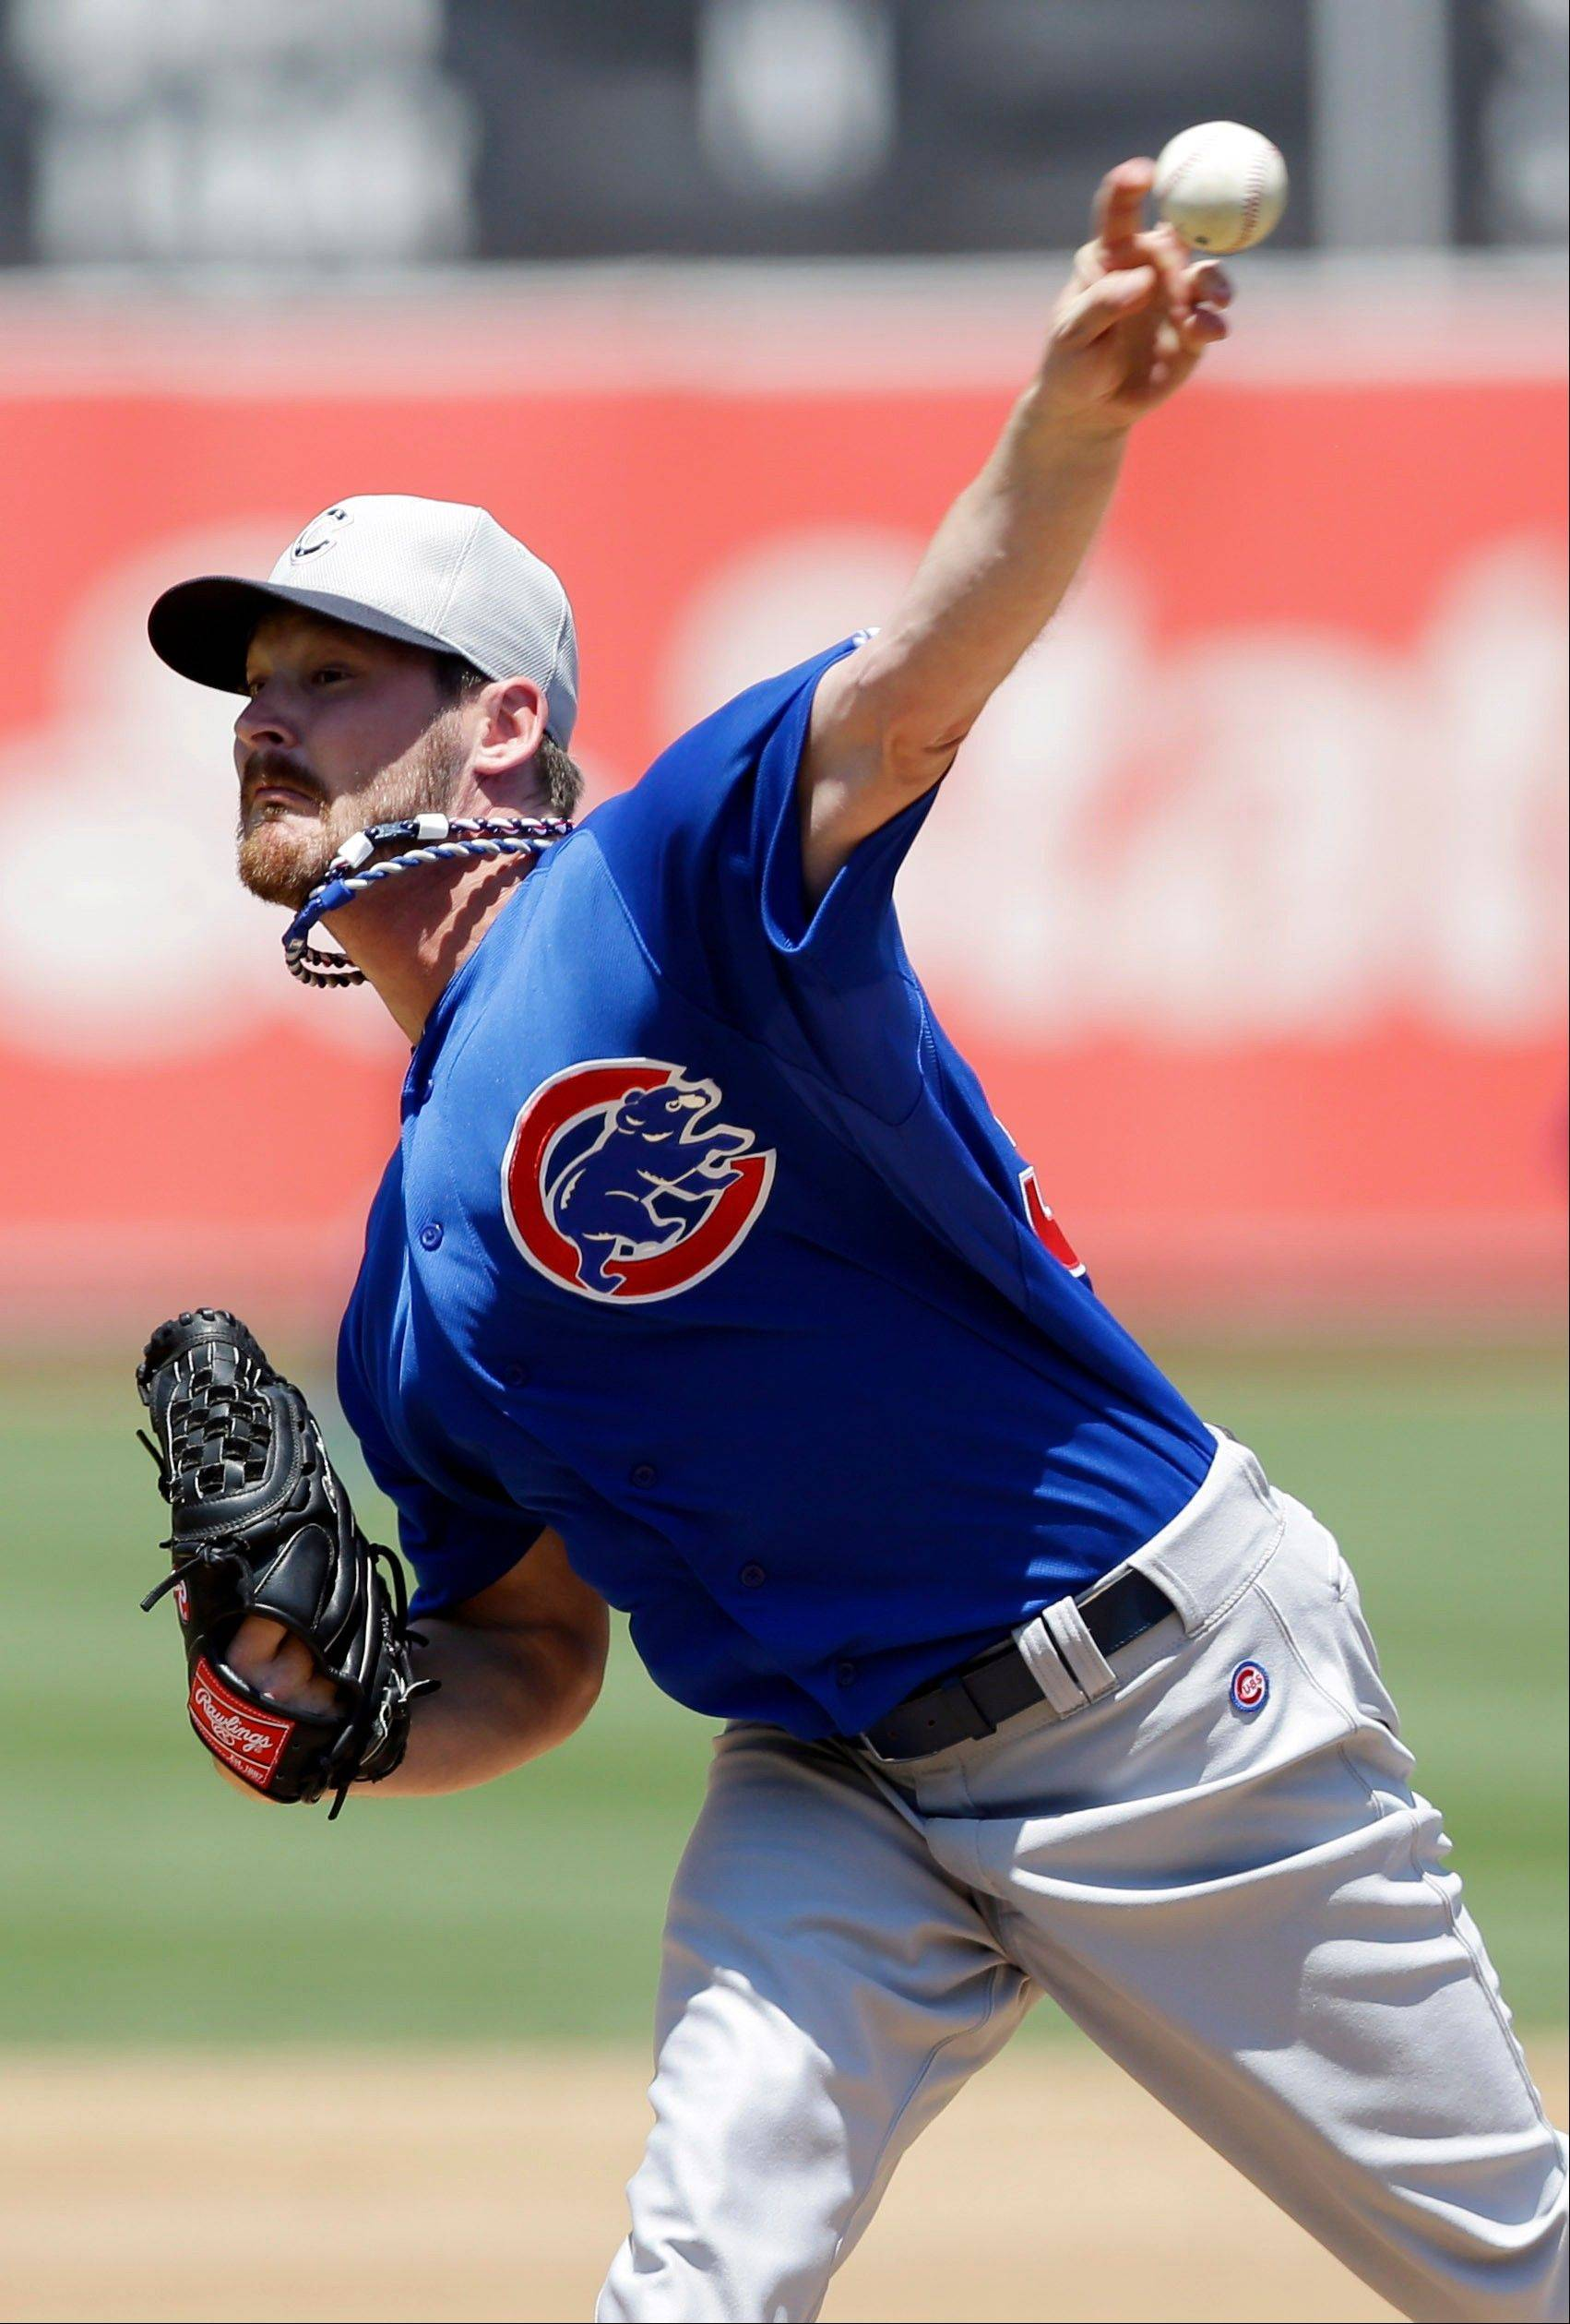 Travis Wood, who has 16 quality starts in 17 outings this season, should represent the Cubs on the National League all-star team according to manager Dale Sveum.